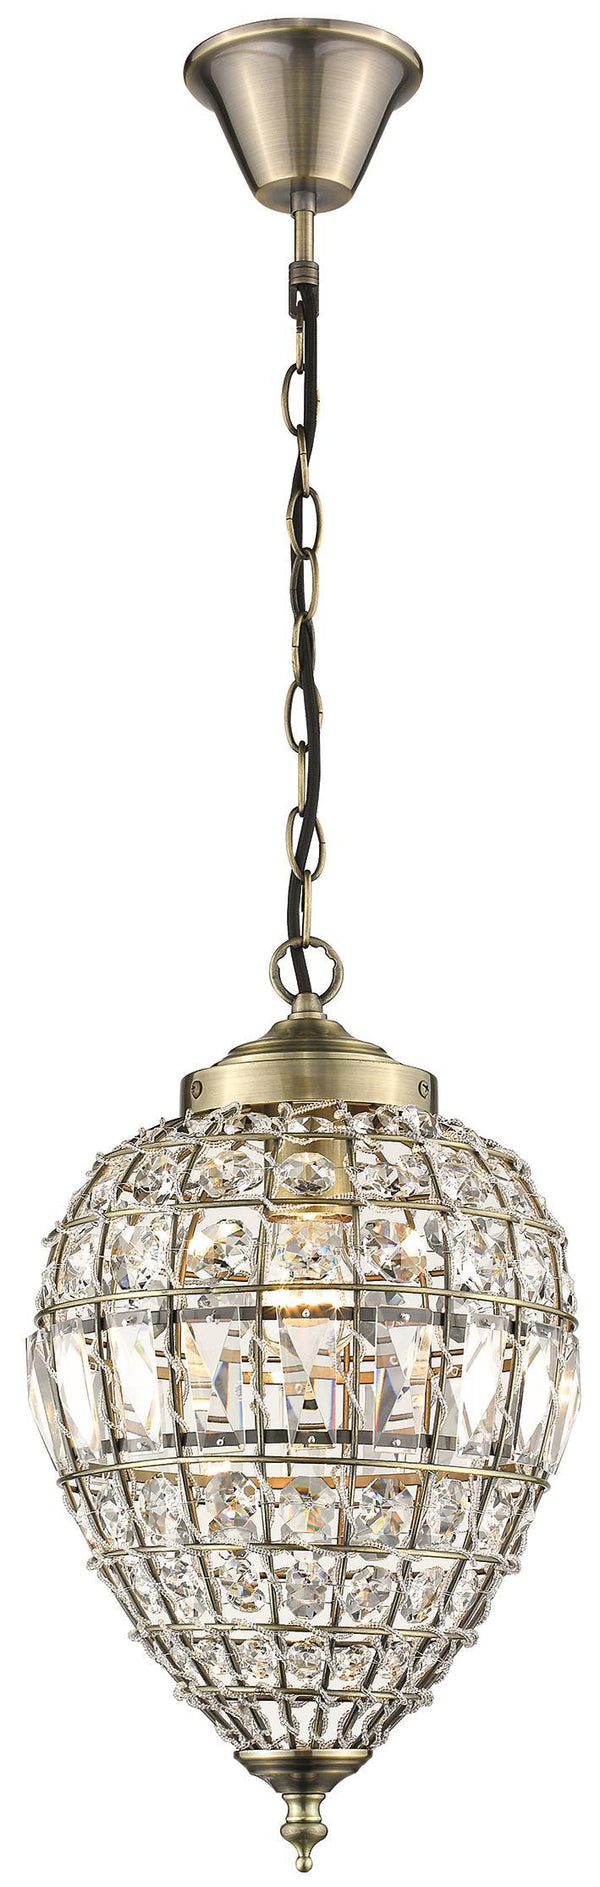 SND Lighting SND185 Fiona Single Pendant Antique Brass - SND Electrical Ltd